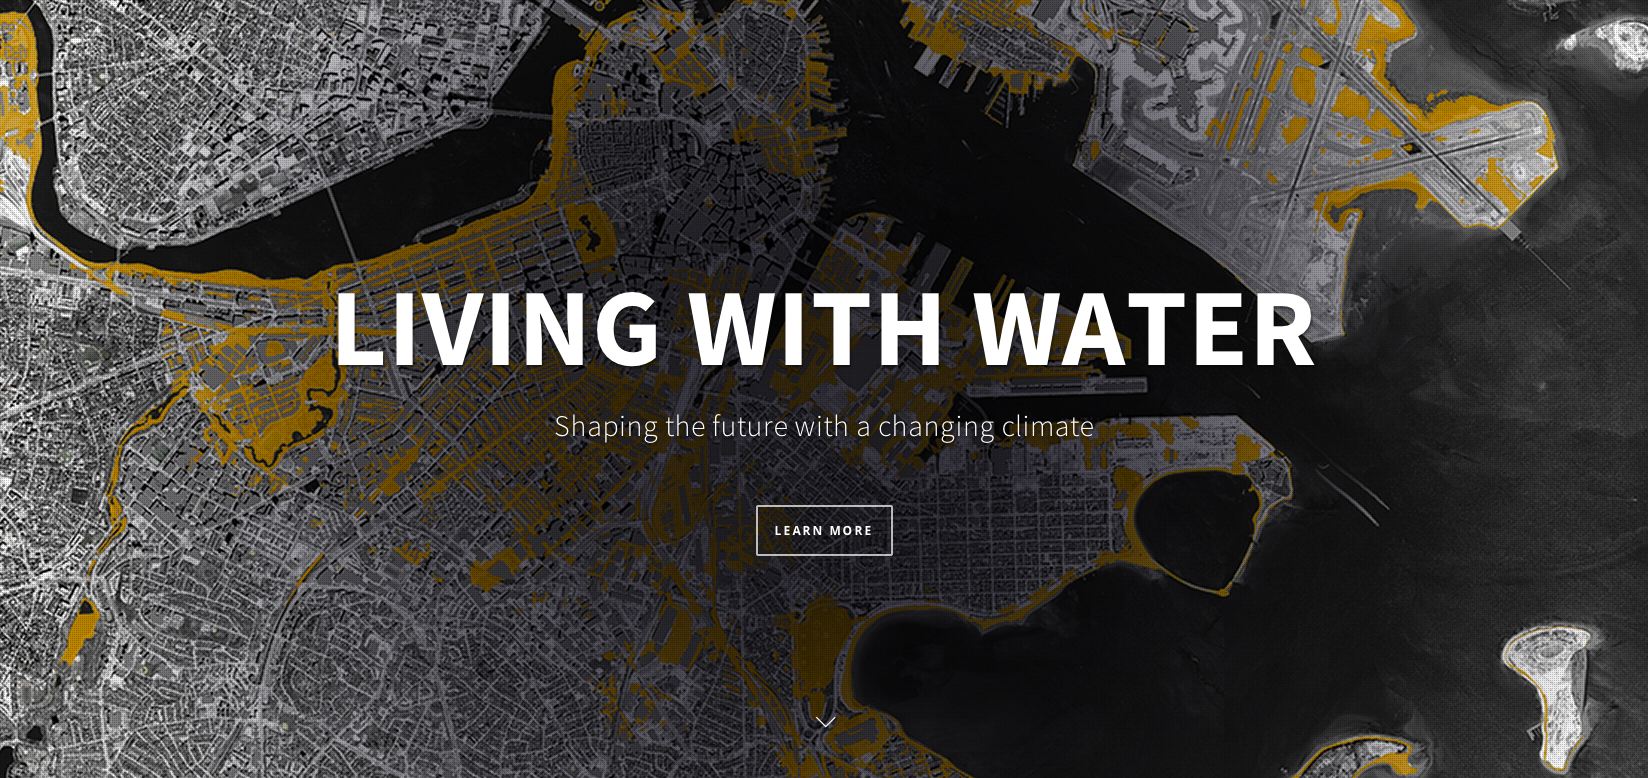 Call for Proposals: Boston Living with Water, Courtesy of Boston Living with Water